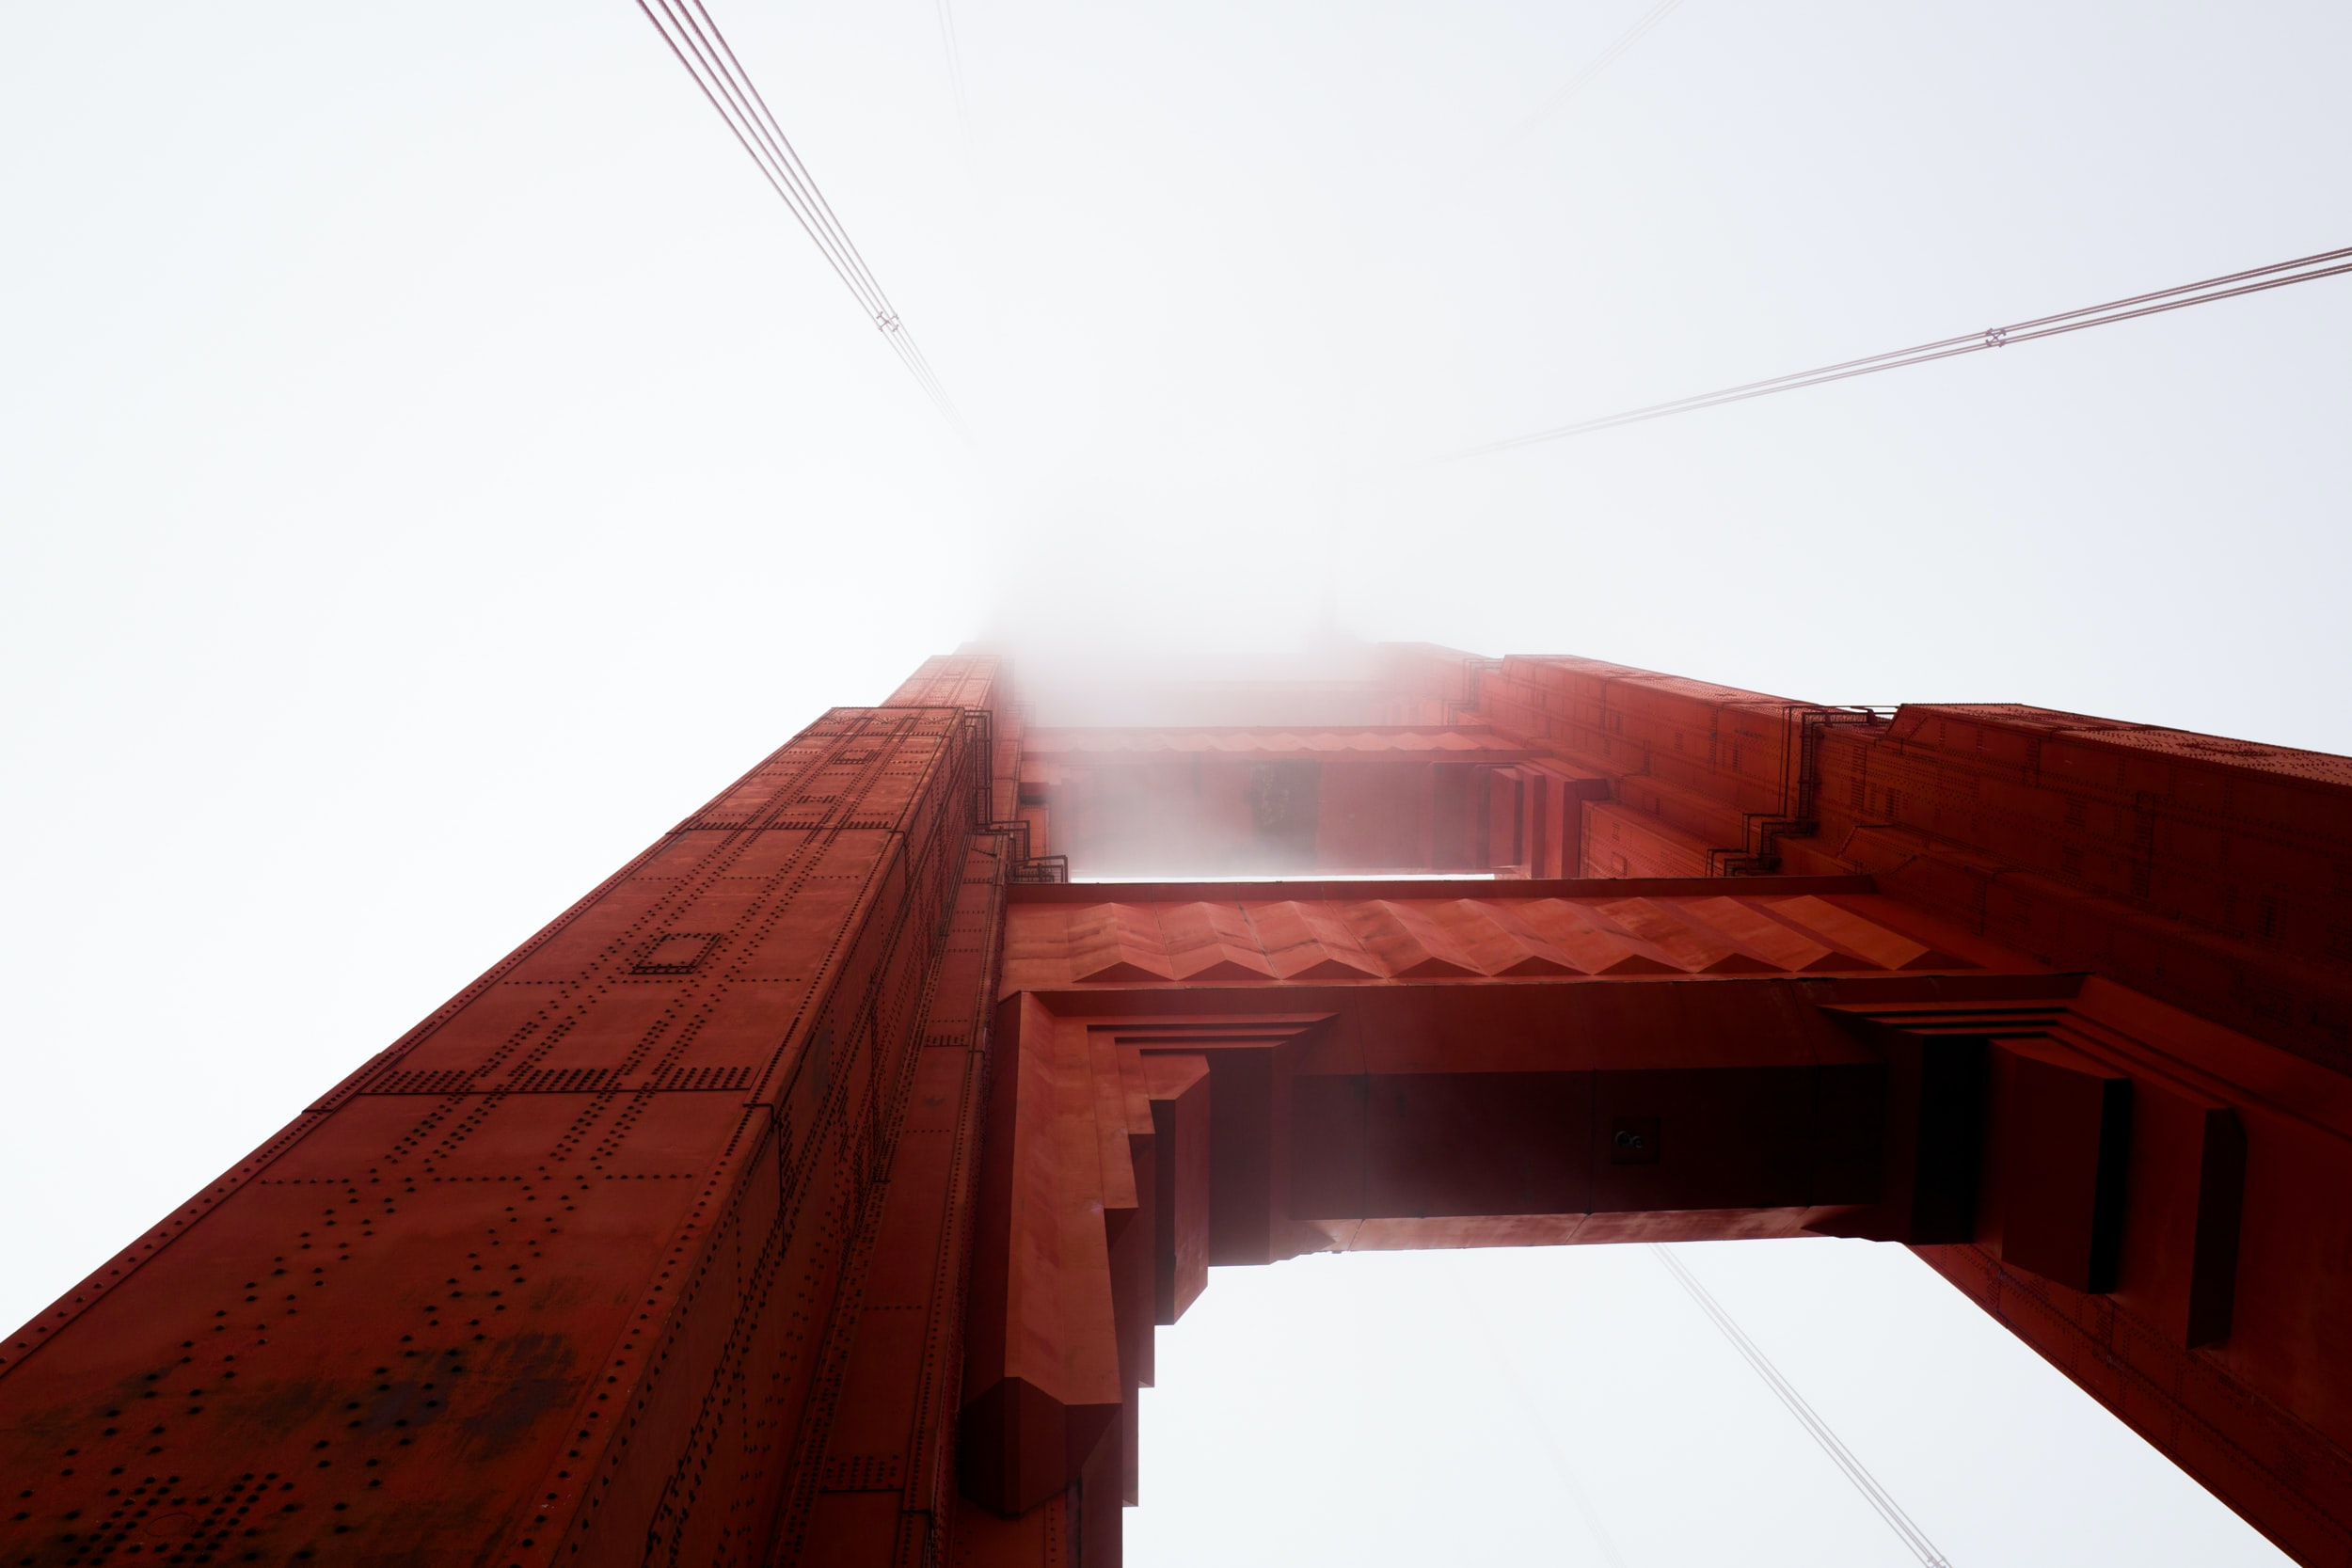 Looking up at the architectural details of Golden Gate Bridge